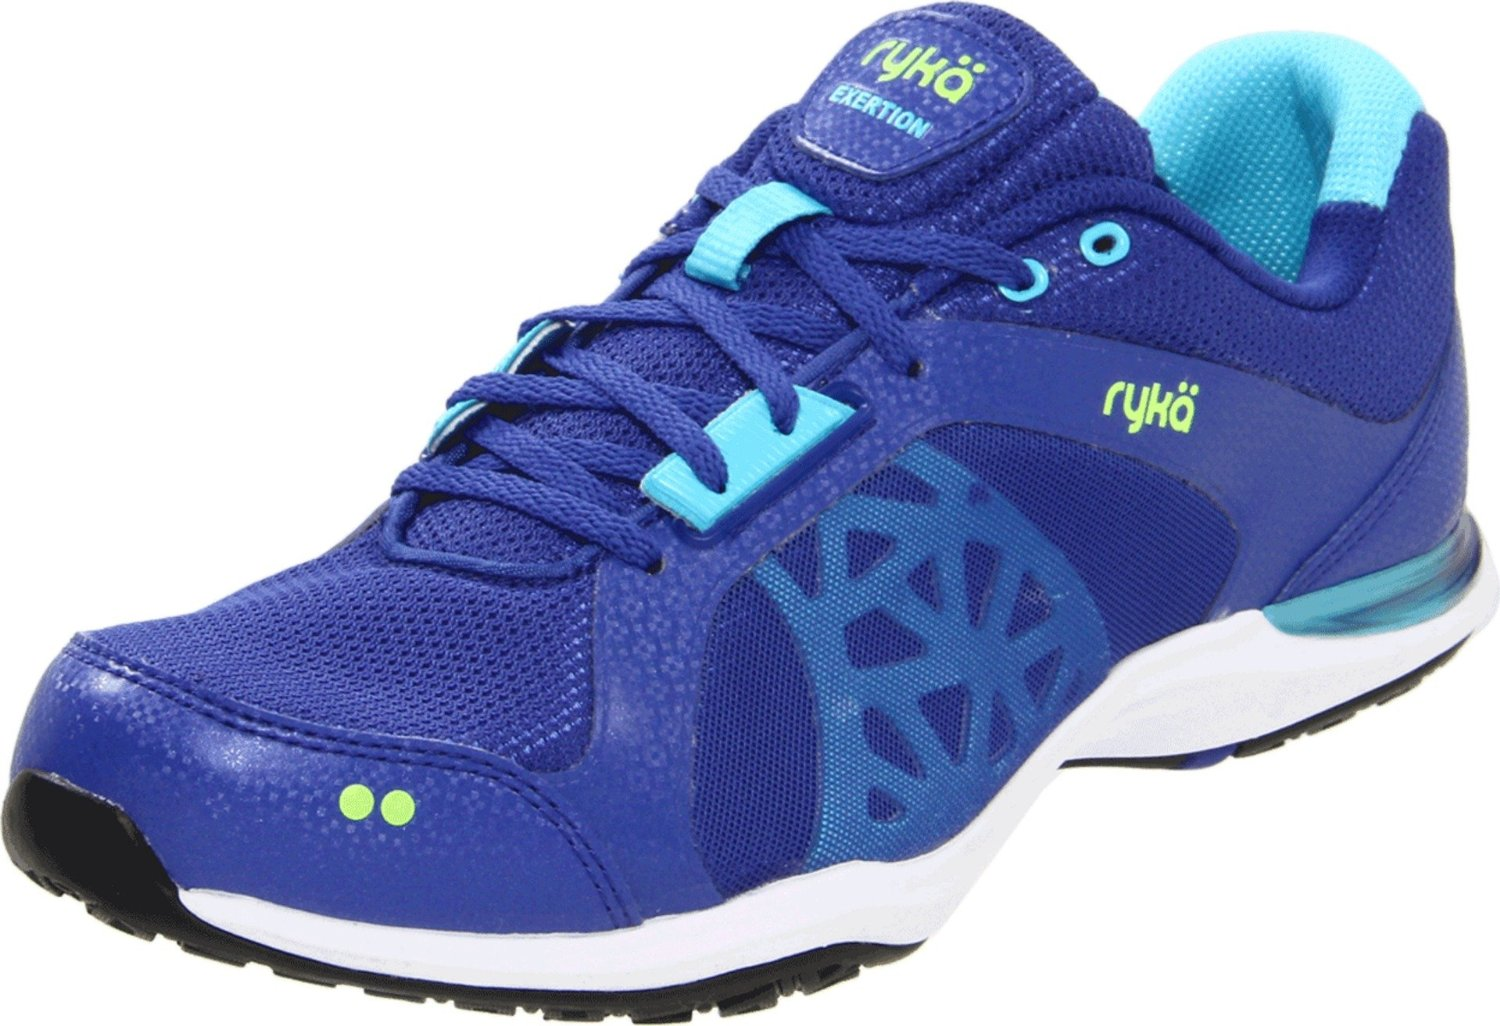 Womens athletic sneakers. Online shoes for women